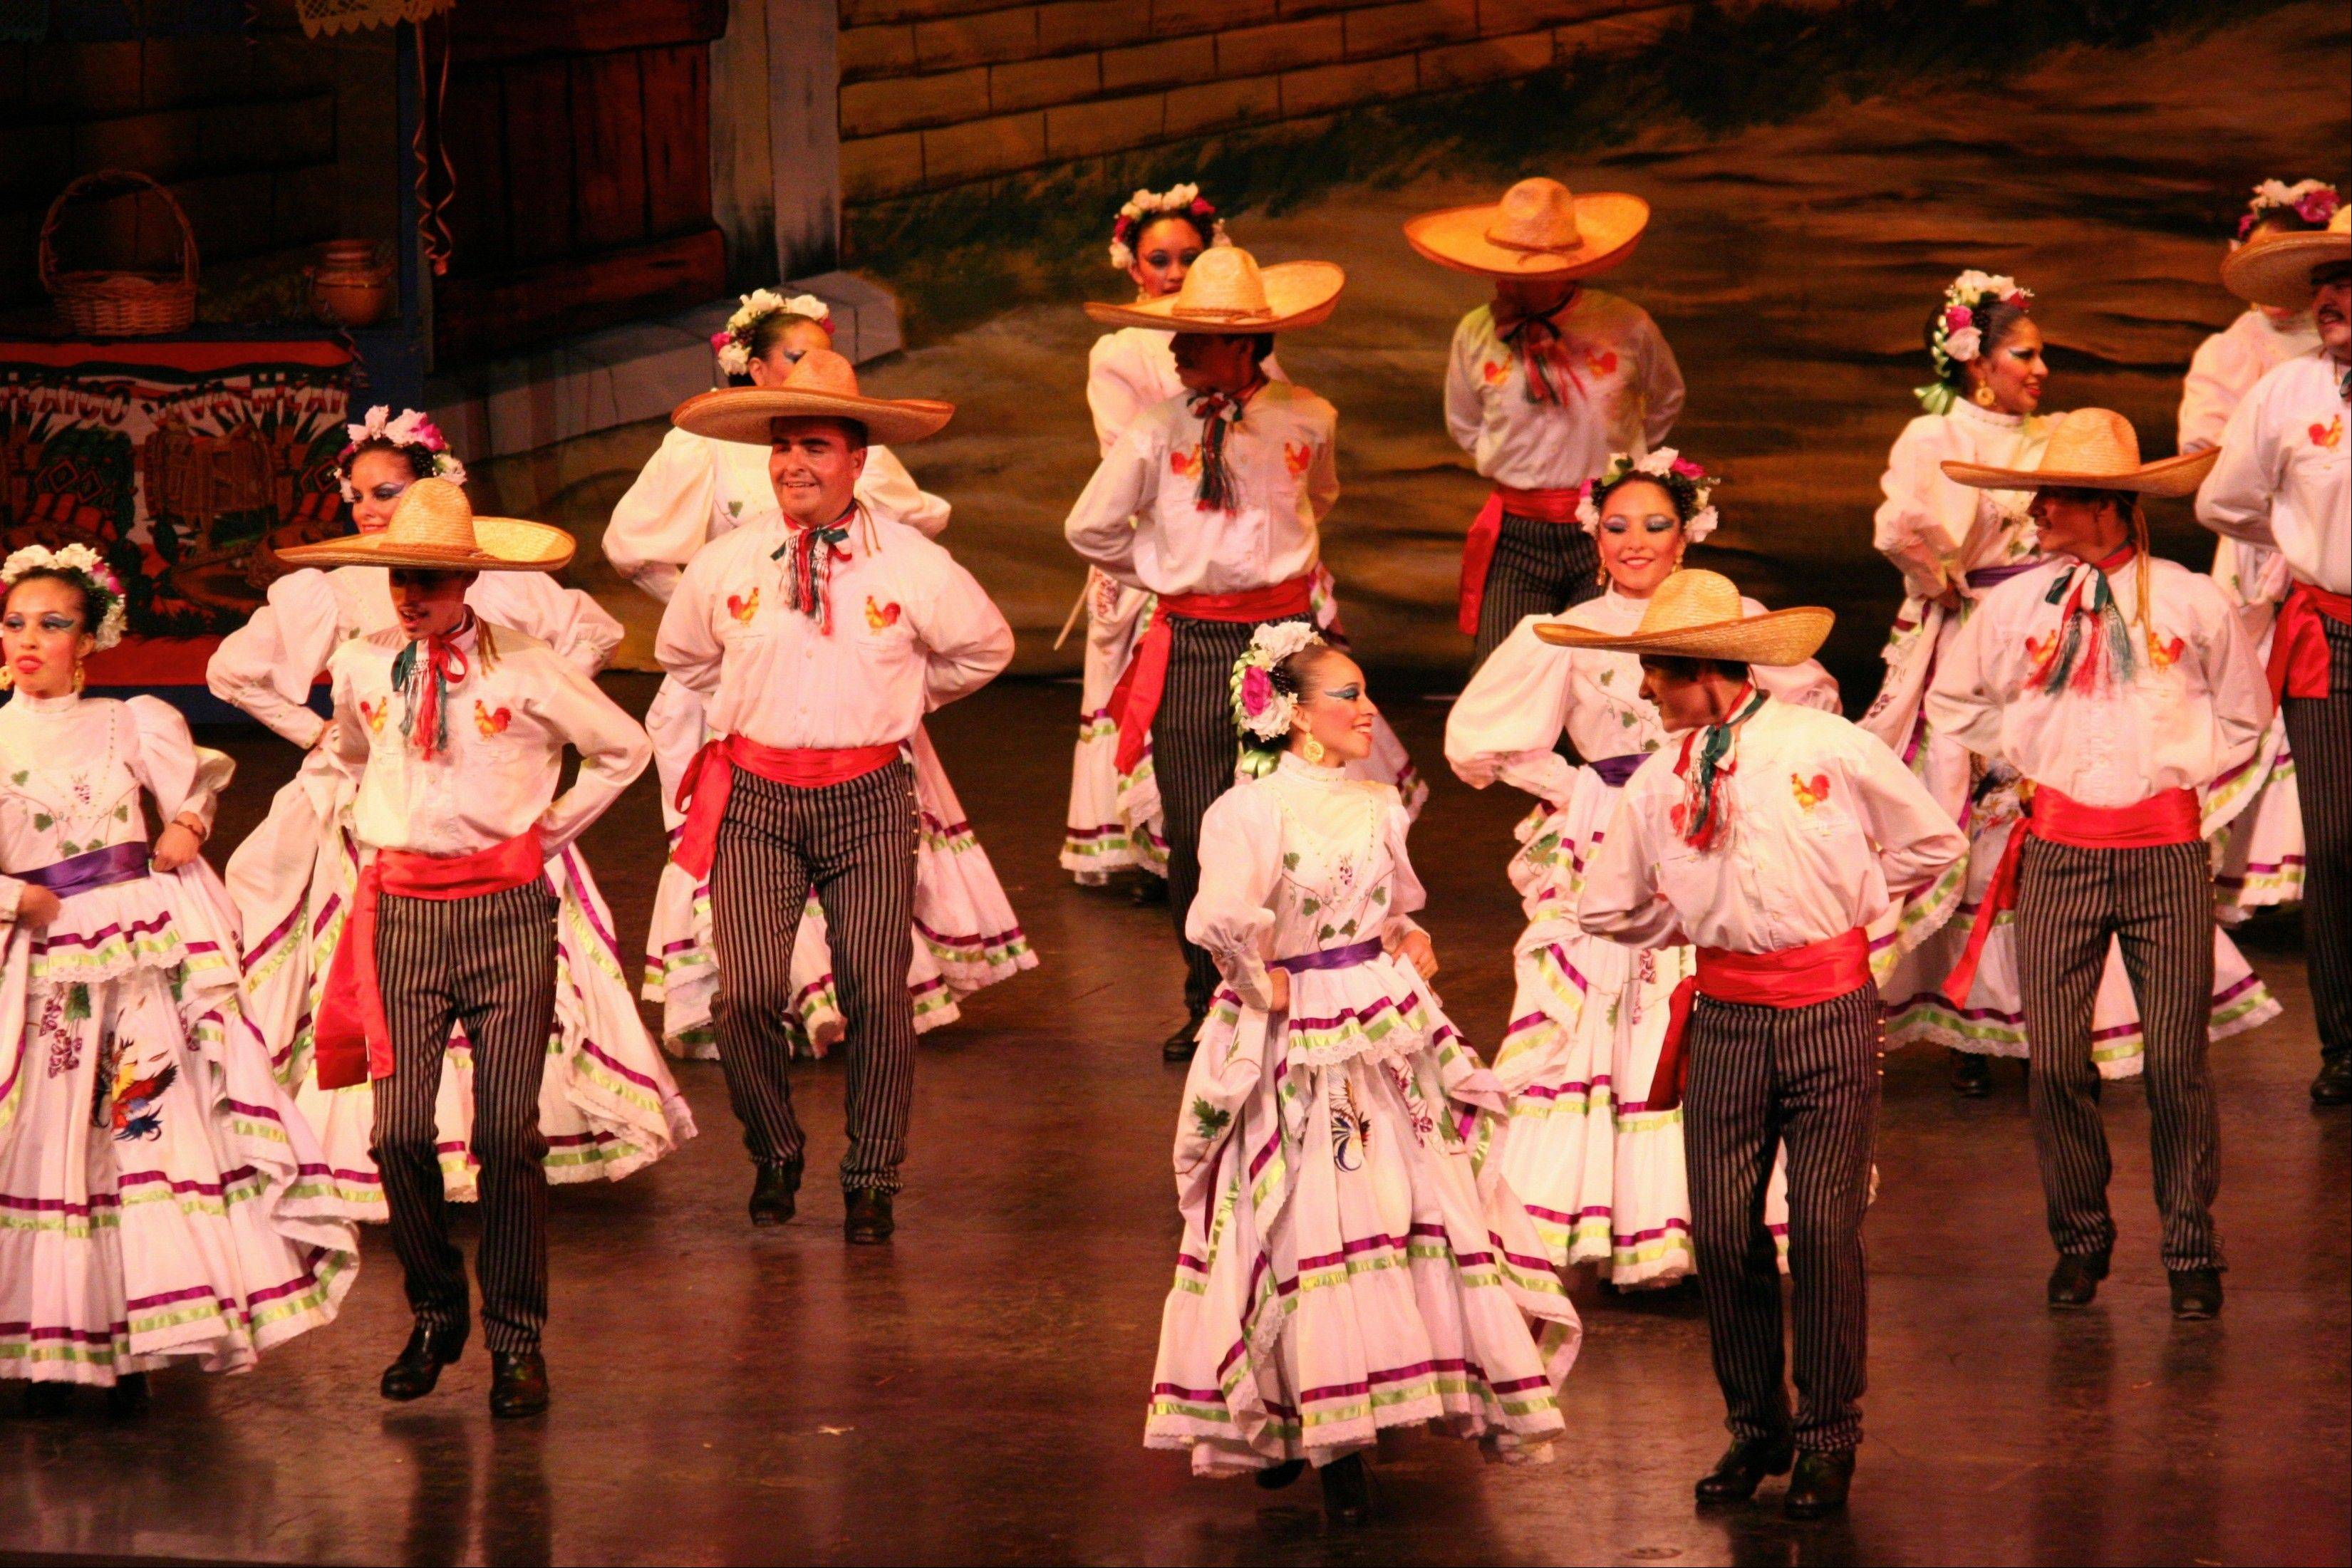 Ballet Folklorico Quetzalcoatl is set to perform at the Paramount Theatre in Aurora on Friday, Oct. 19.